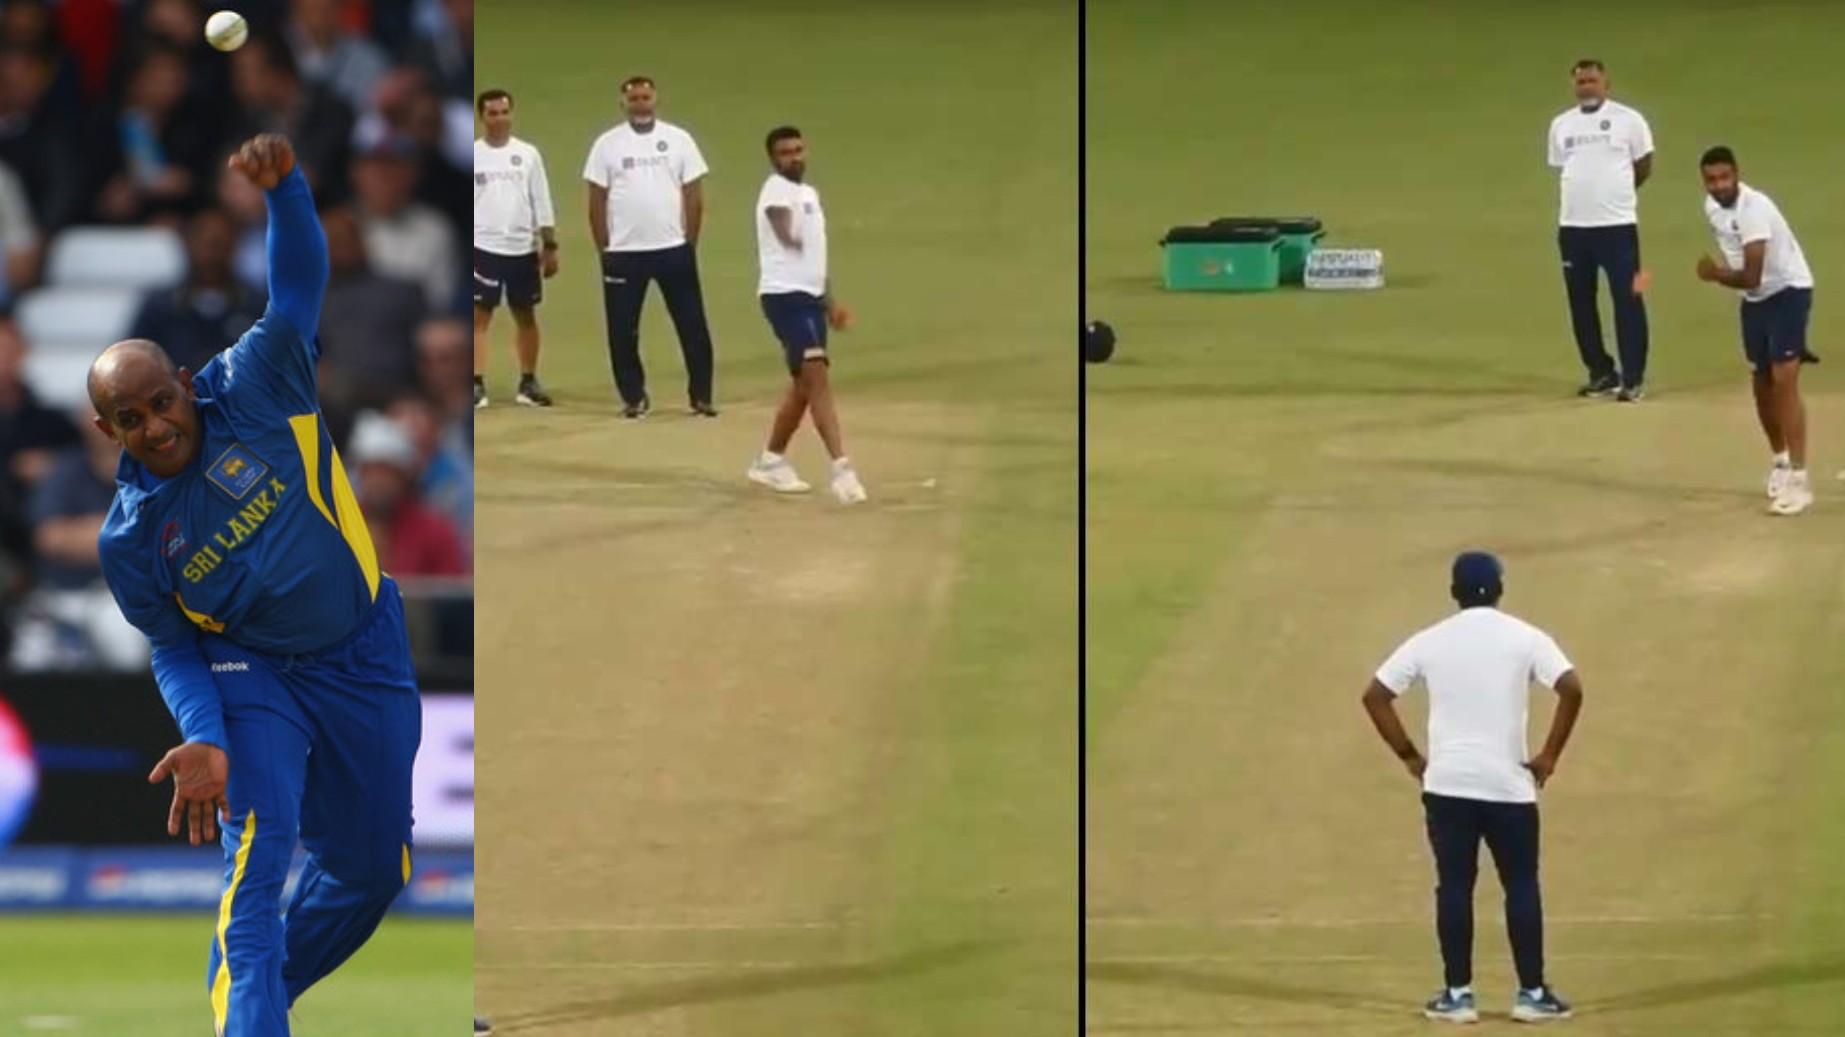 IND v BAN 2019: WATCH- R Ashwin practices left-arm spin; copies Sanath Jayasuriya's action perfectly